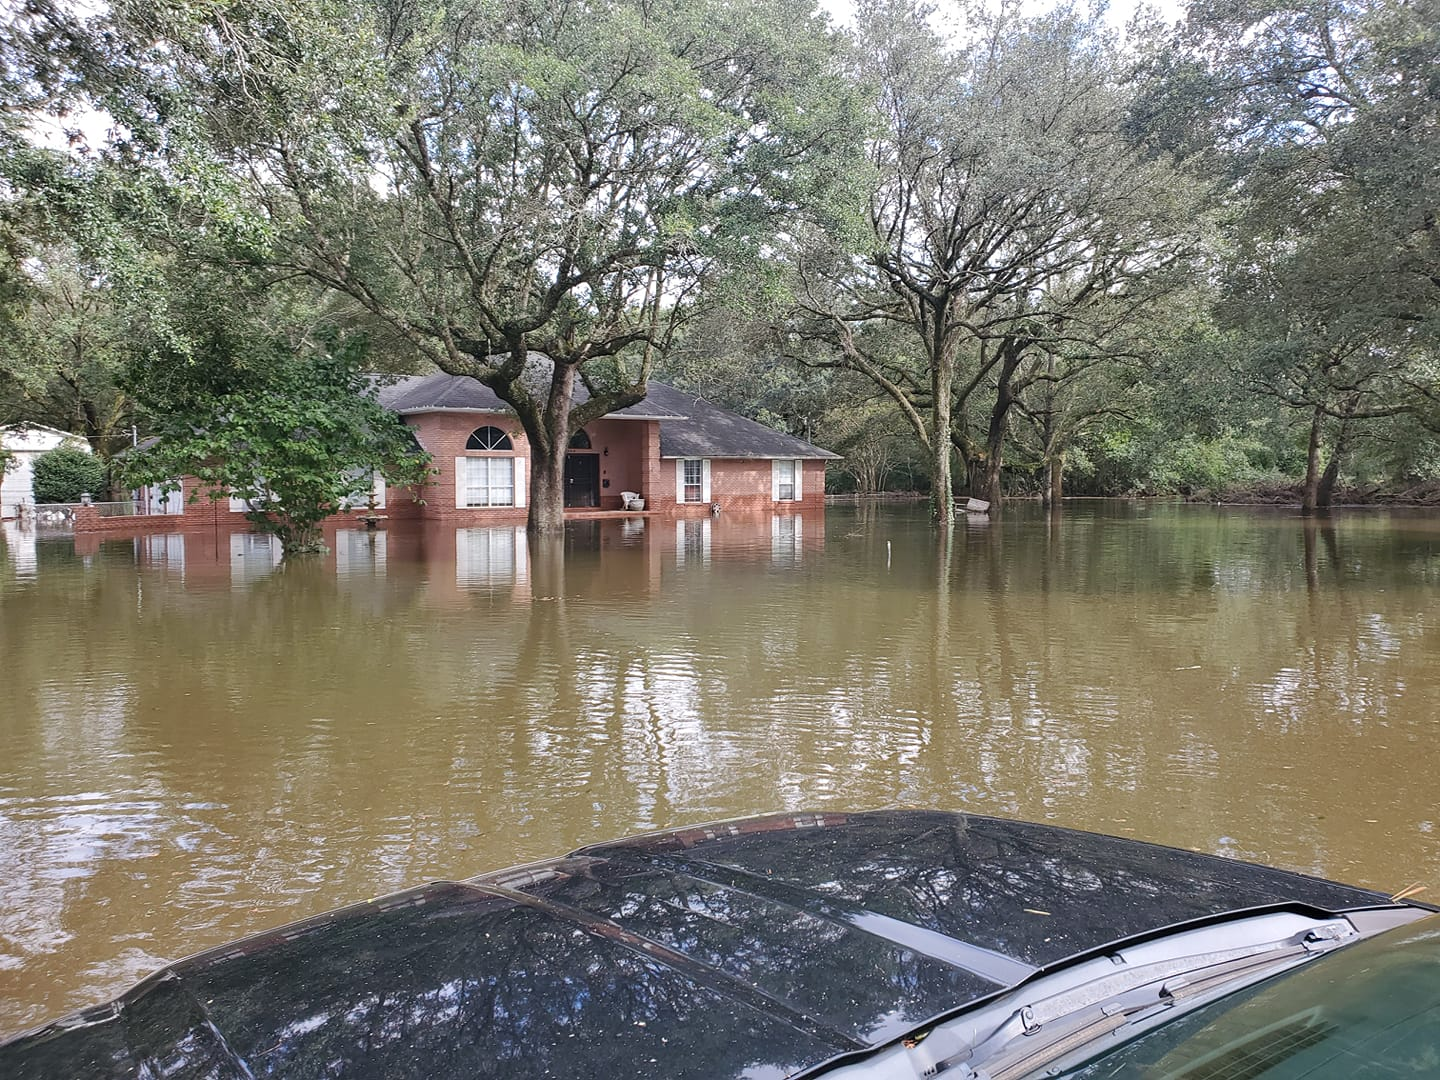 Full front view of Chad Merrills house on Saddle Creek Road in No Flood Zone